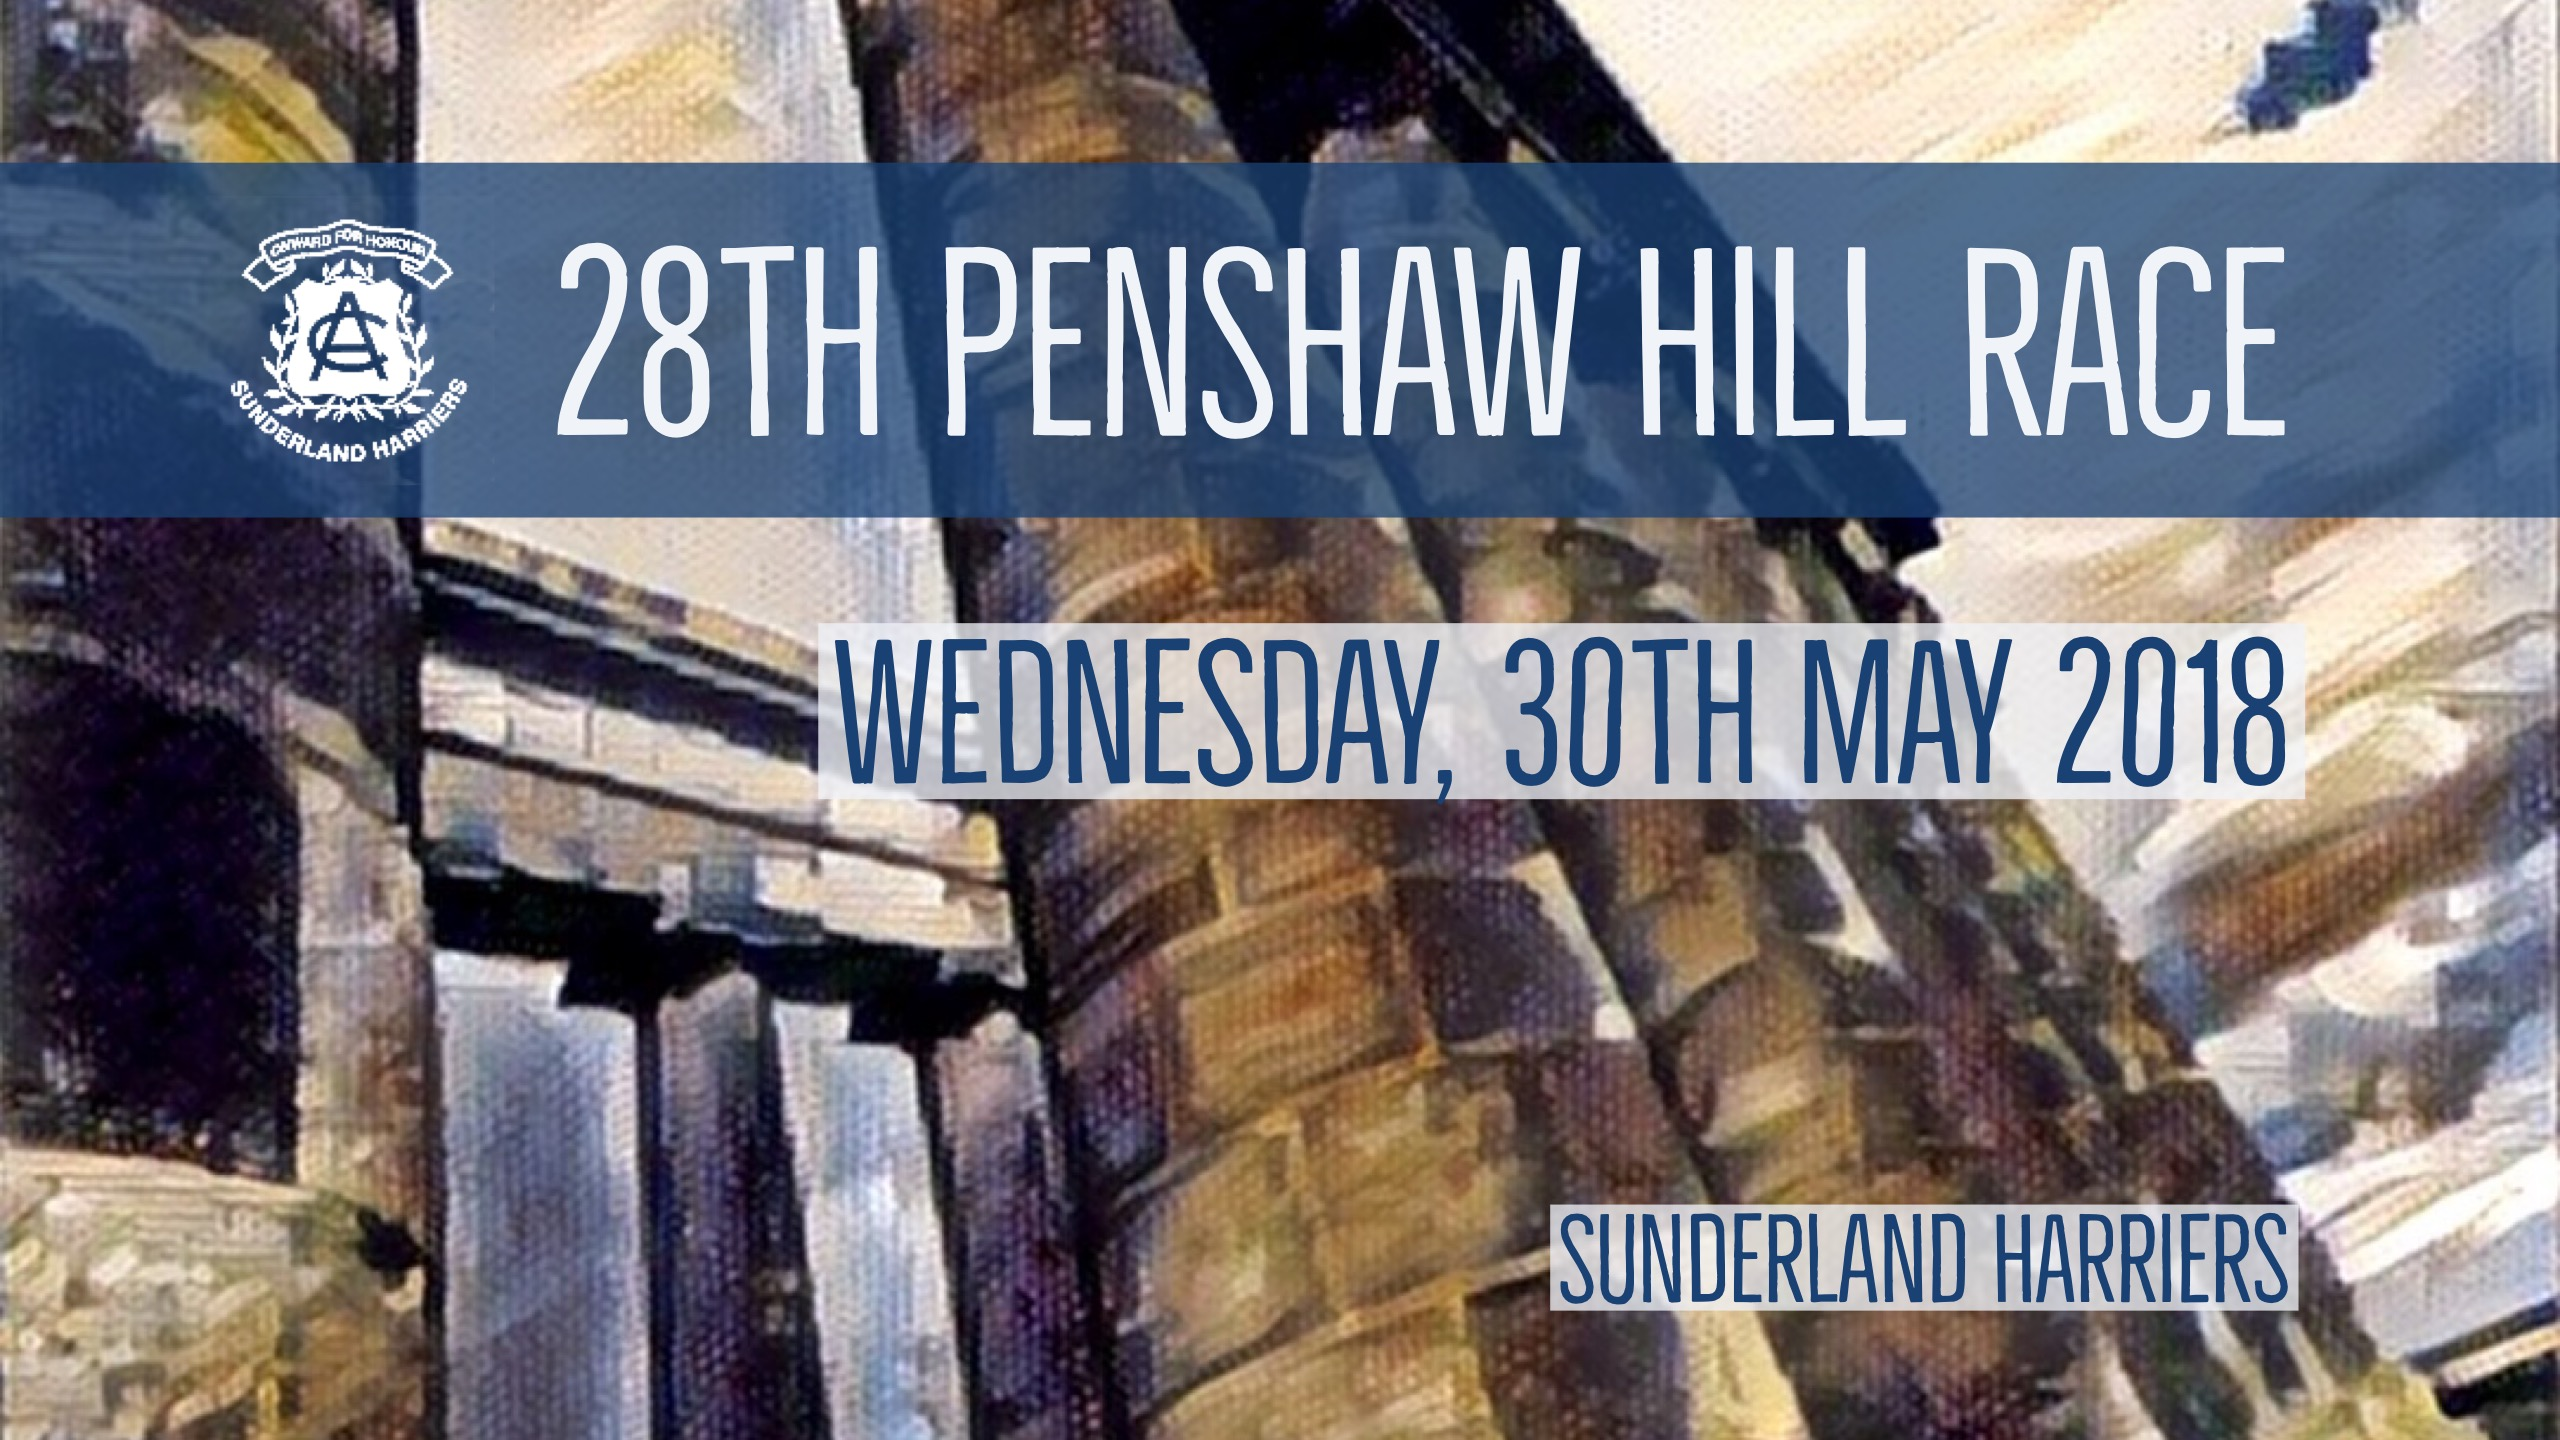 Penshaw Hill Race 2018 Entry Form